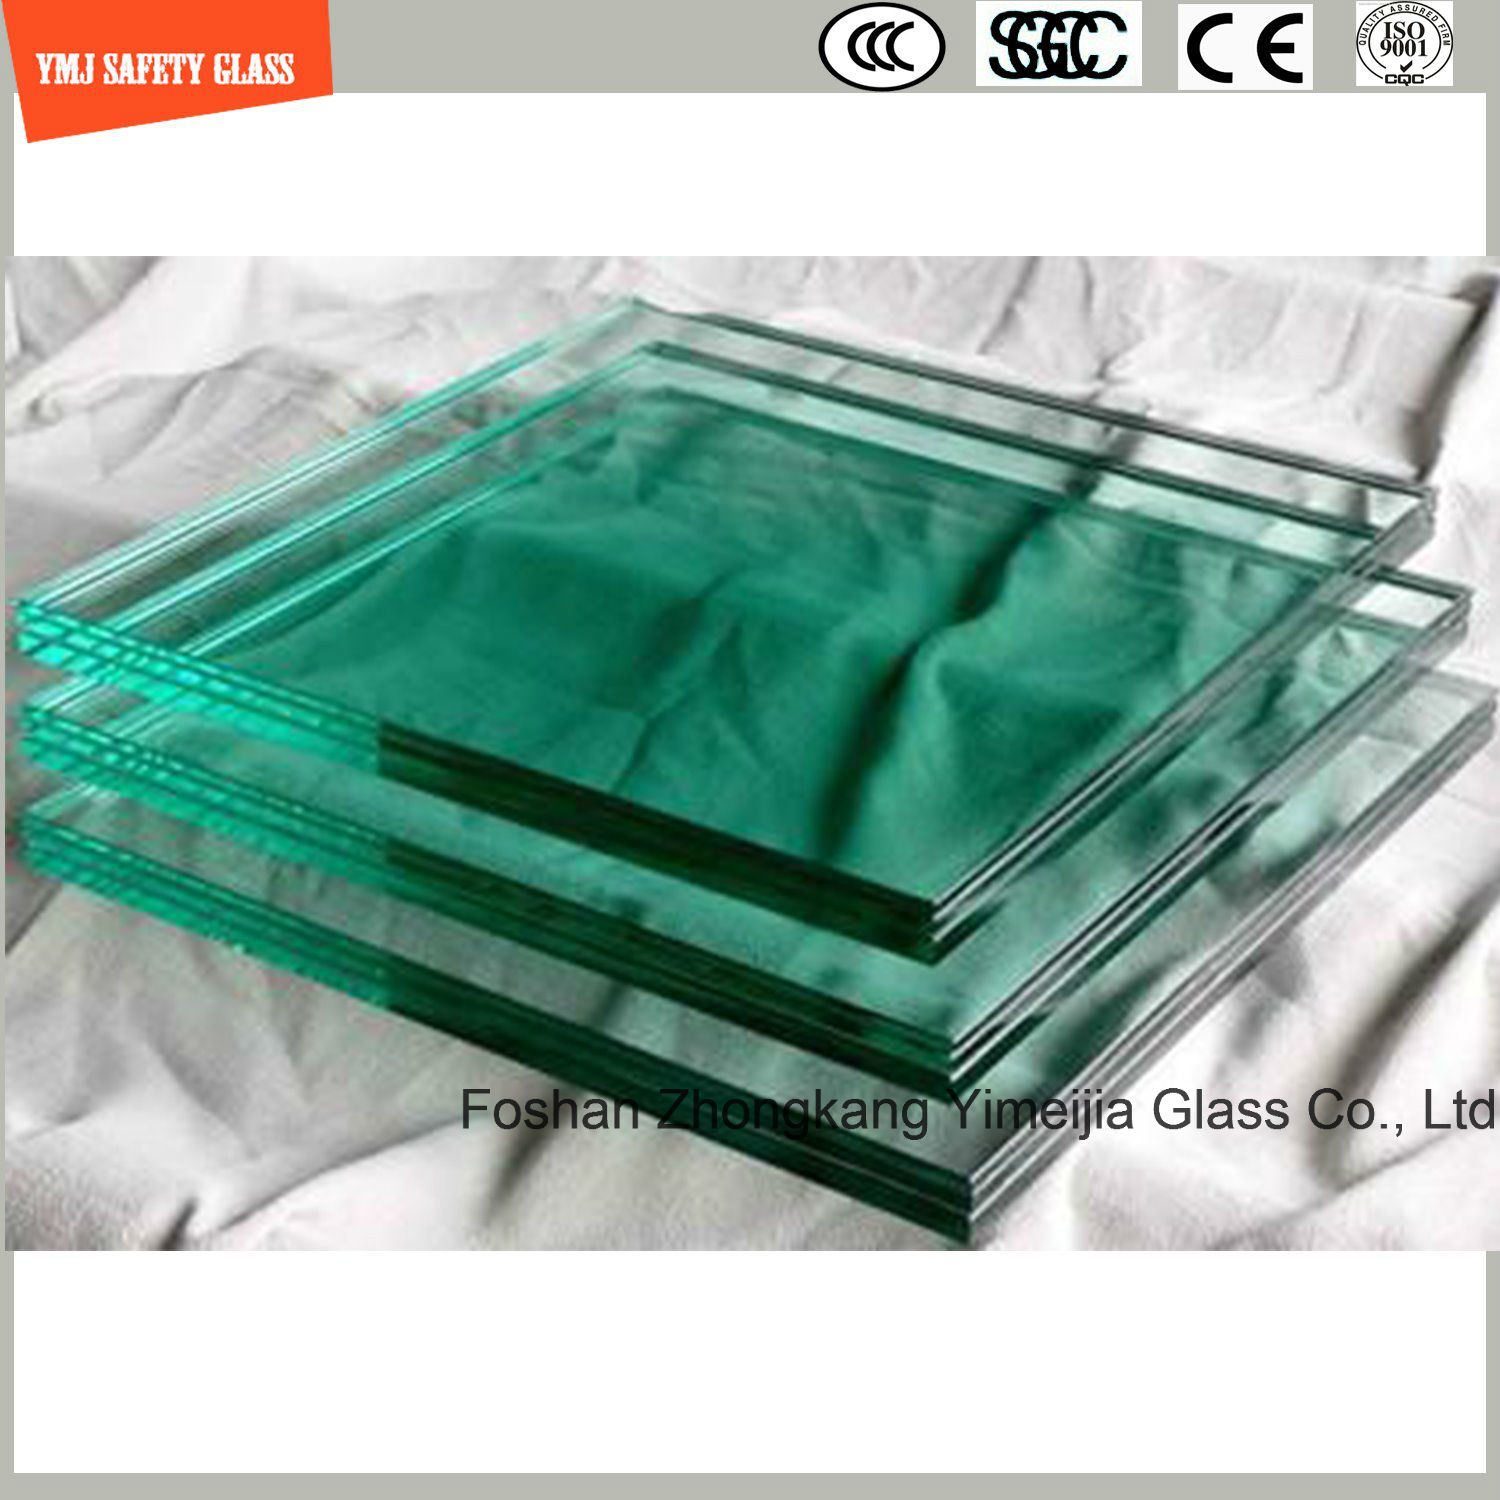 4-19mm Tempered Glass for Green House, Hotel, Construction, Shower